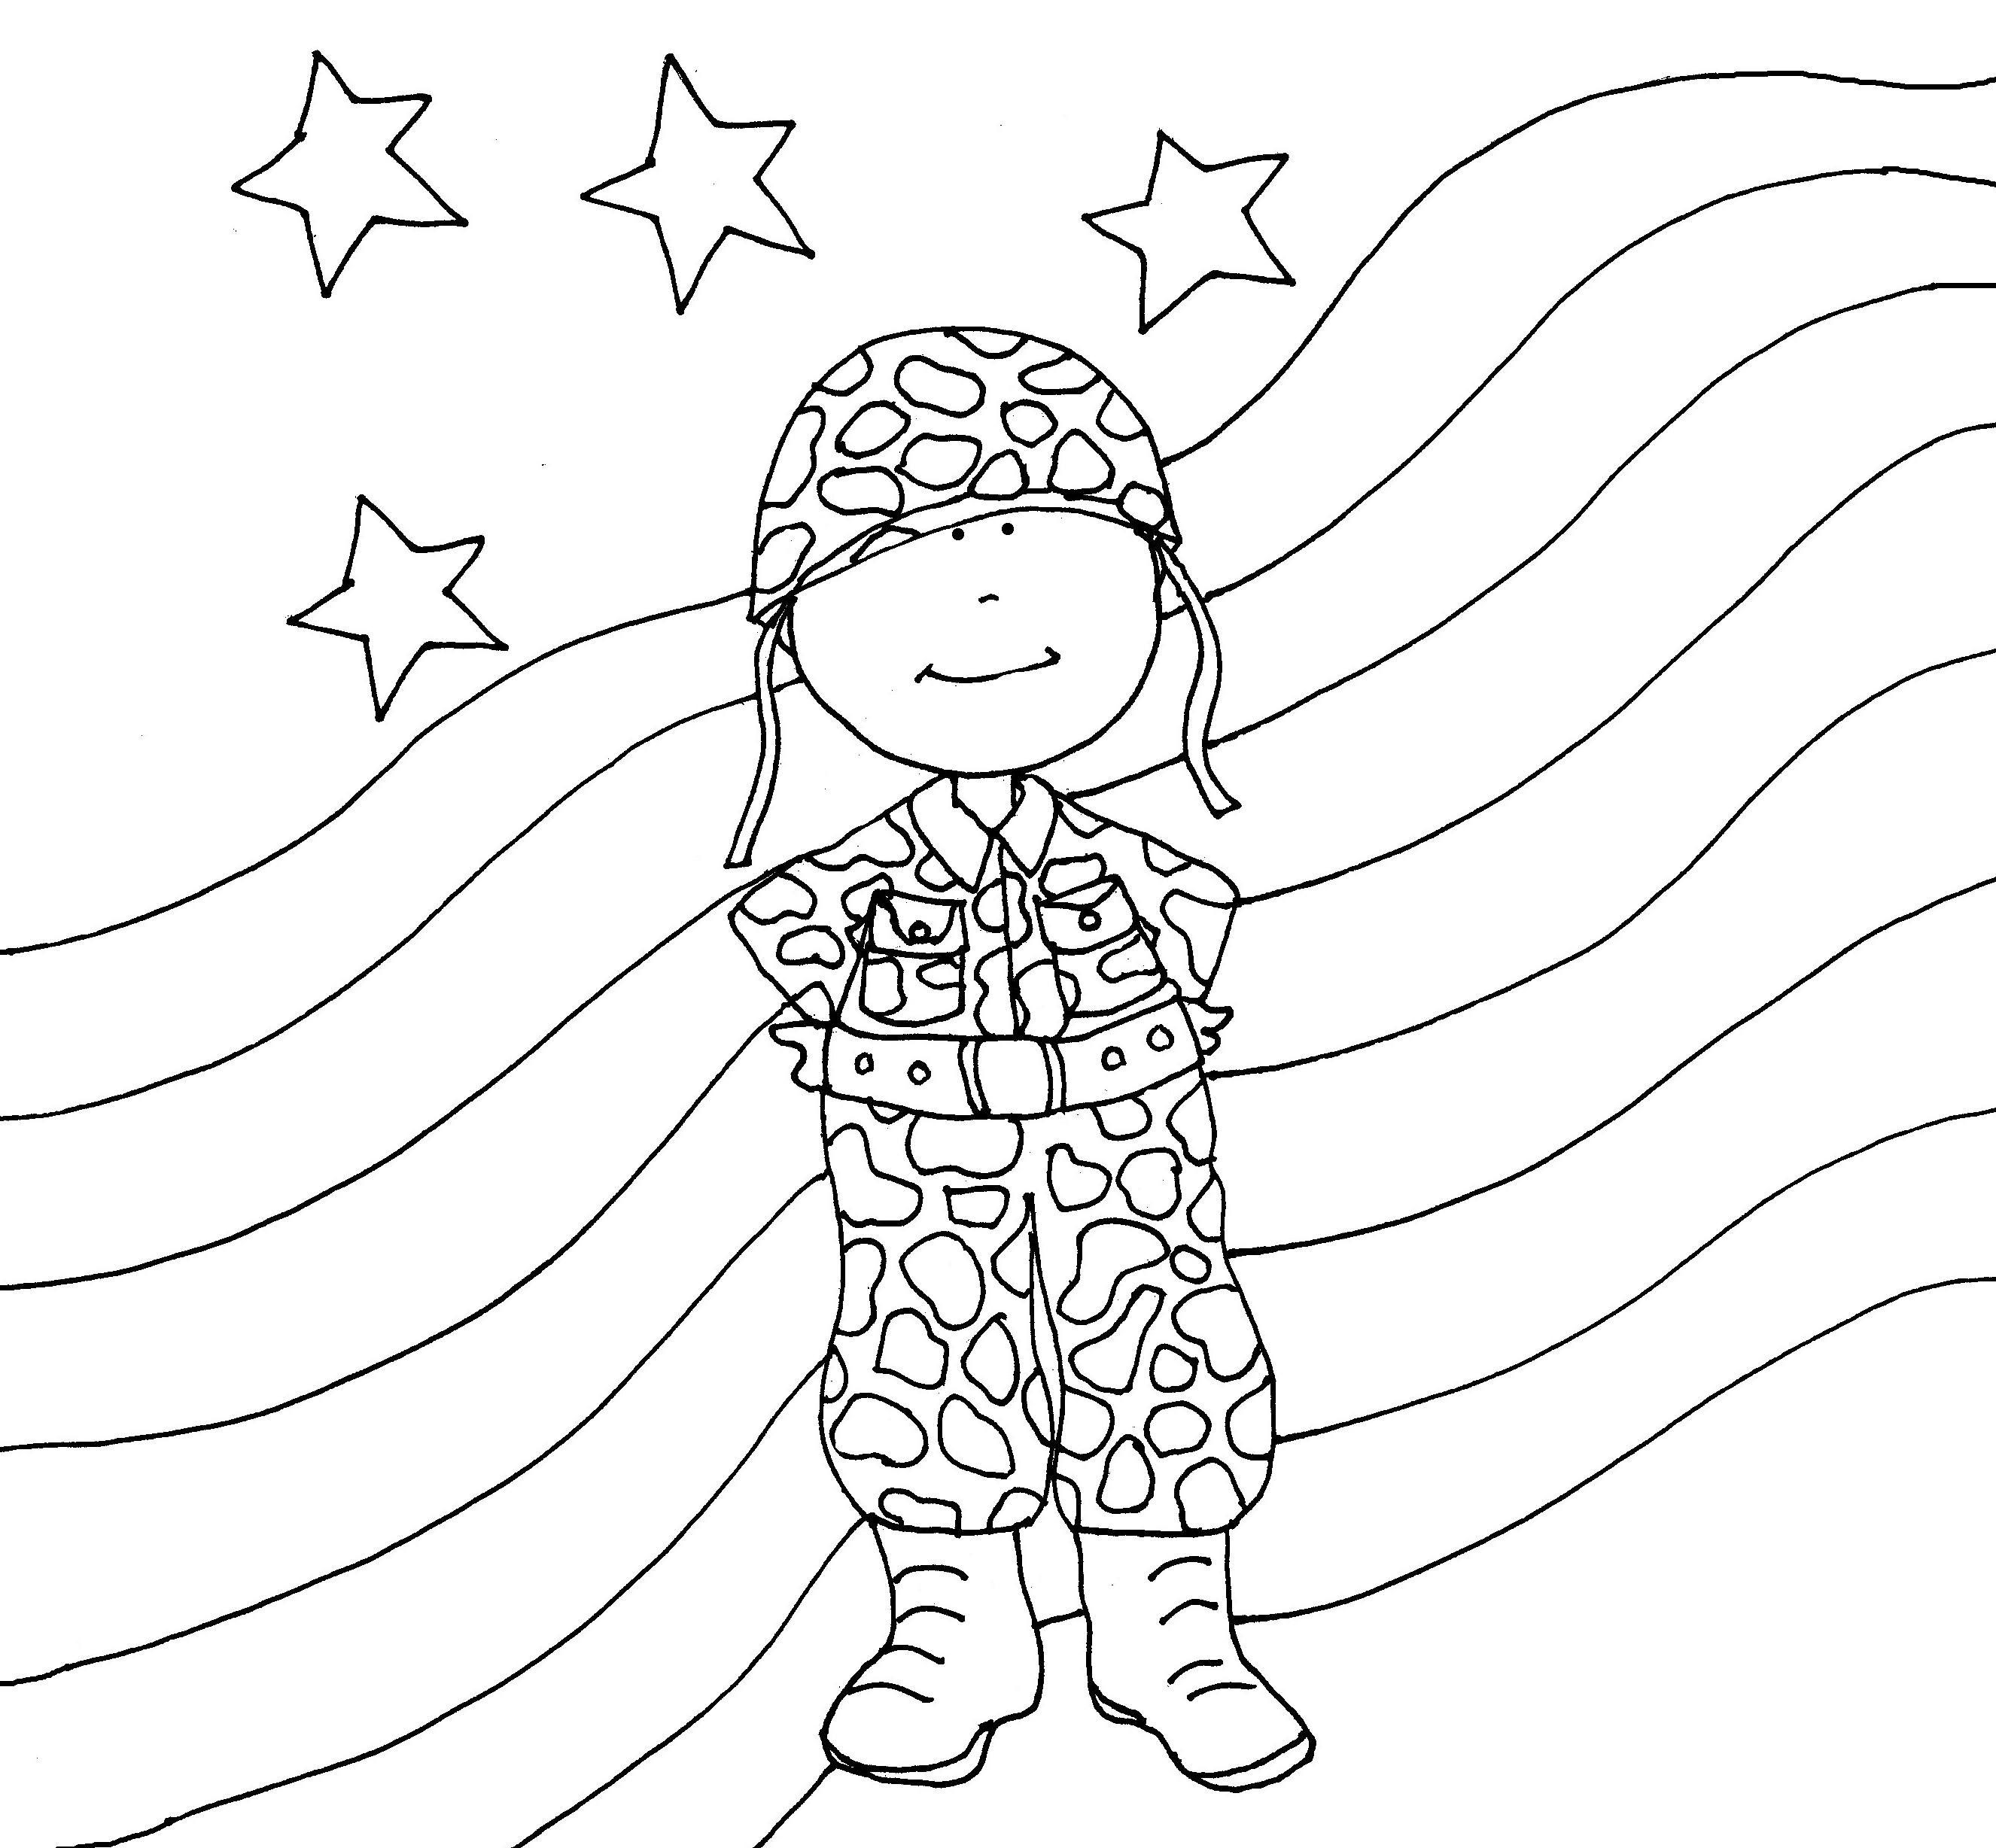 Soldier | Dearie Dolls Digi Stamps  I love all of Mary Ellen's free digis, but this one and the soldier girl will be great for Operation Write Home cards!